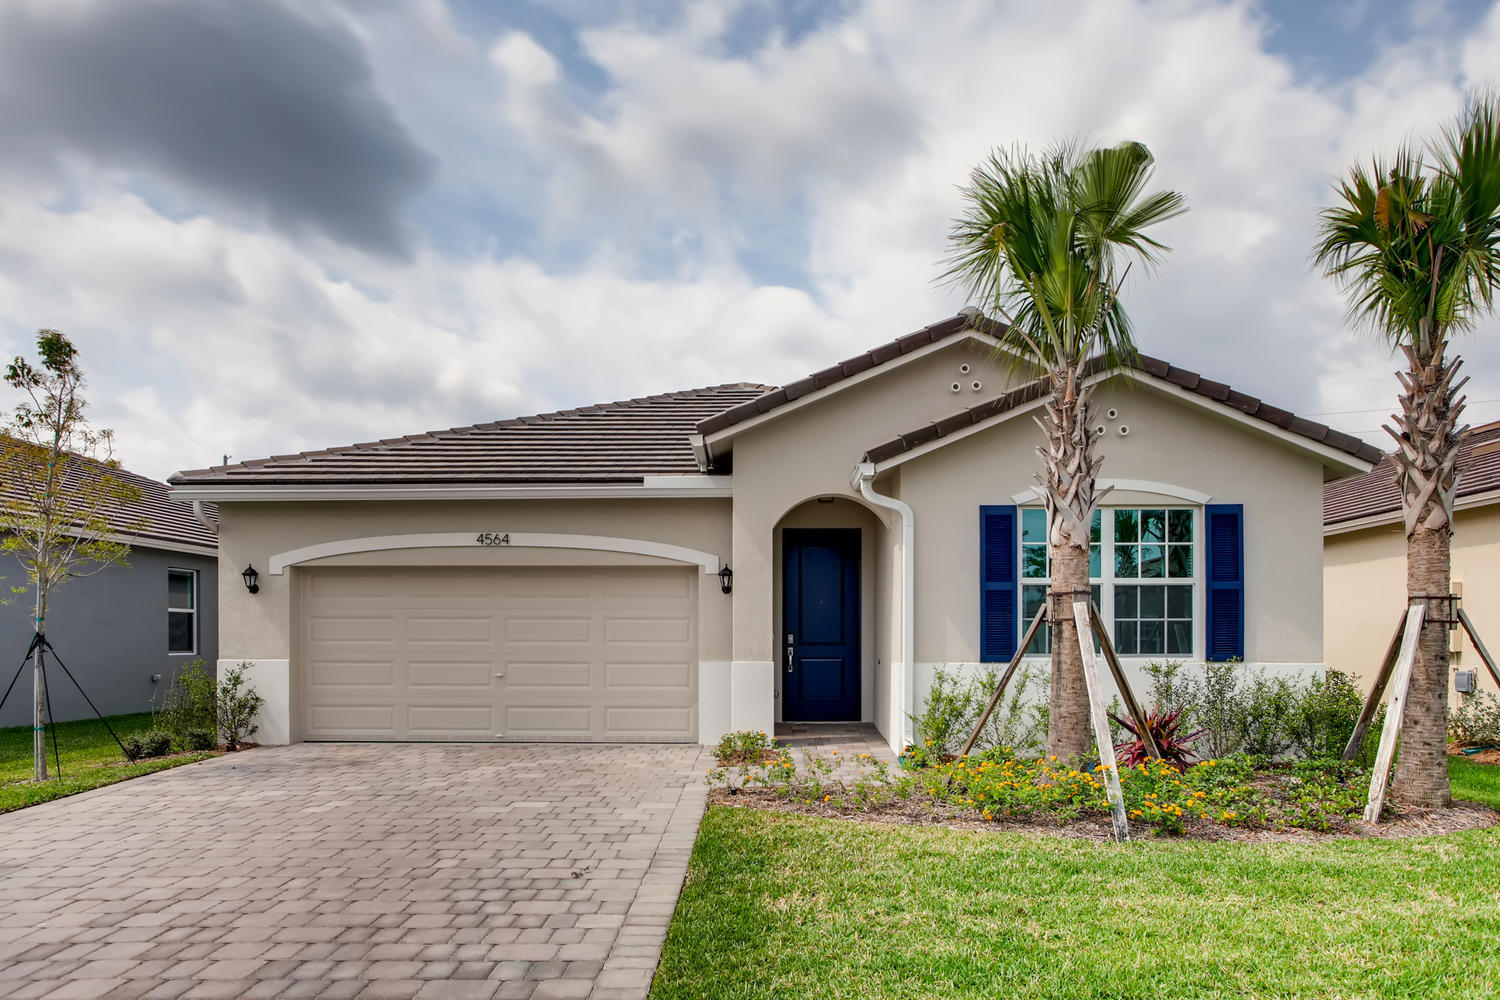 Photo of 4564 NW King Court, Jensen Beach, FL 34957